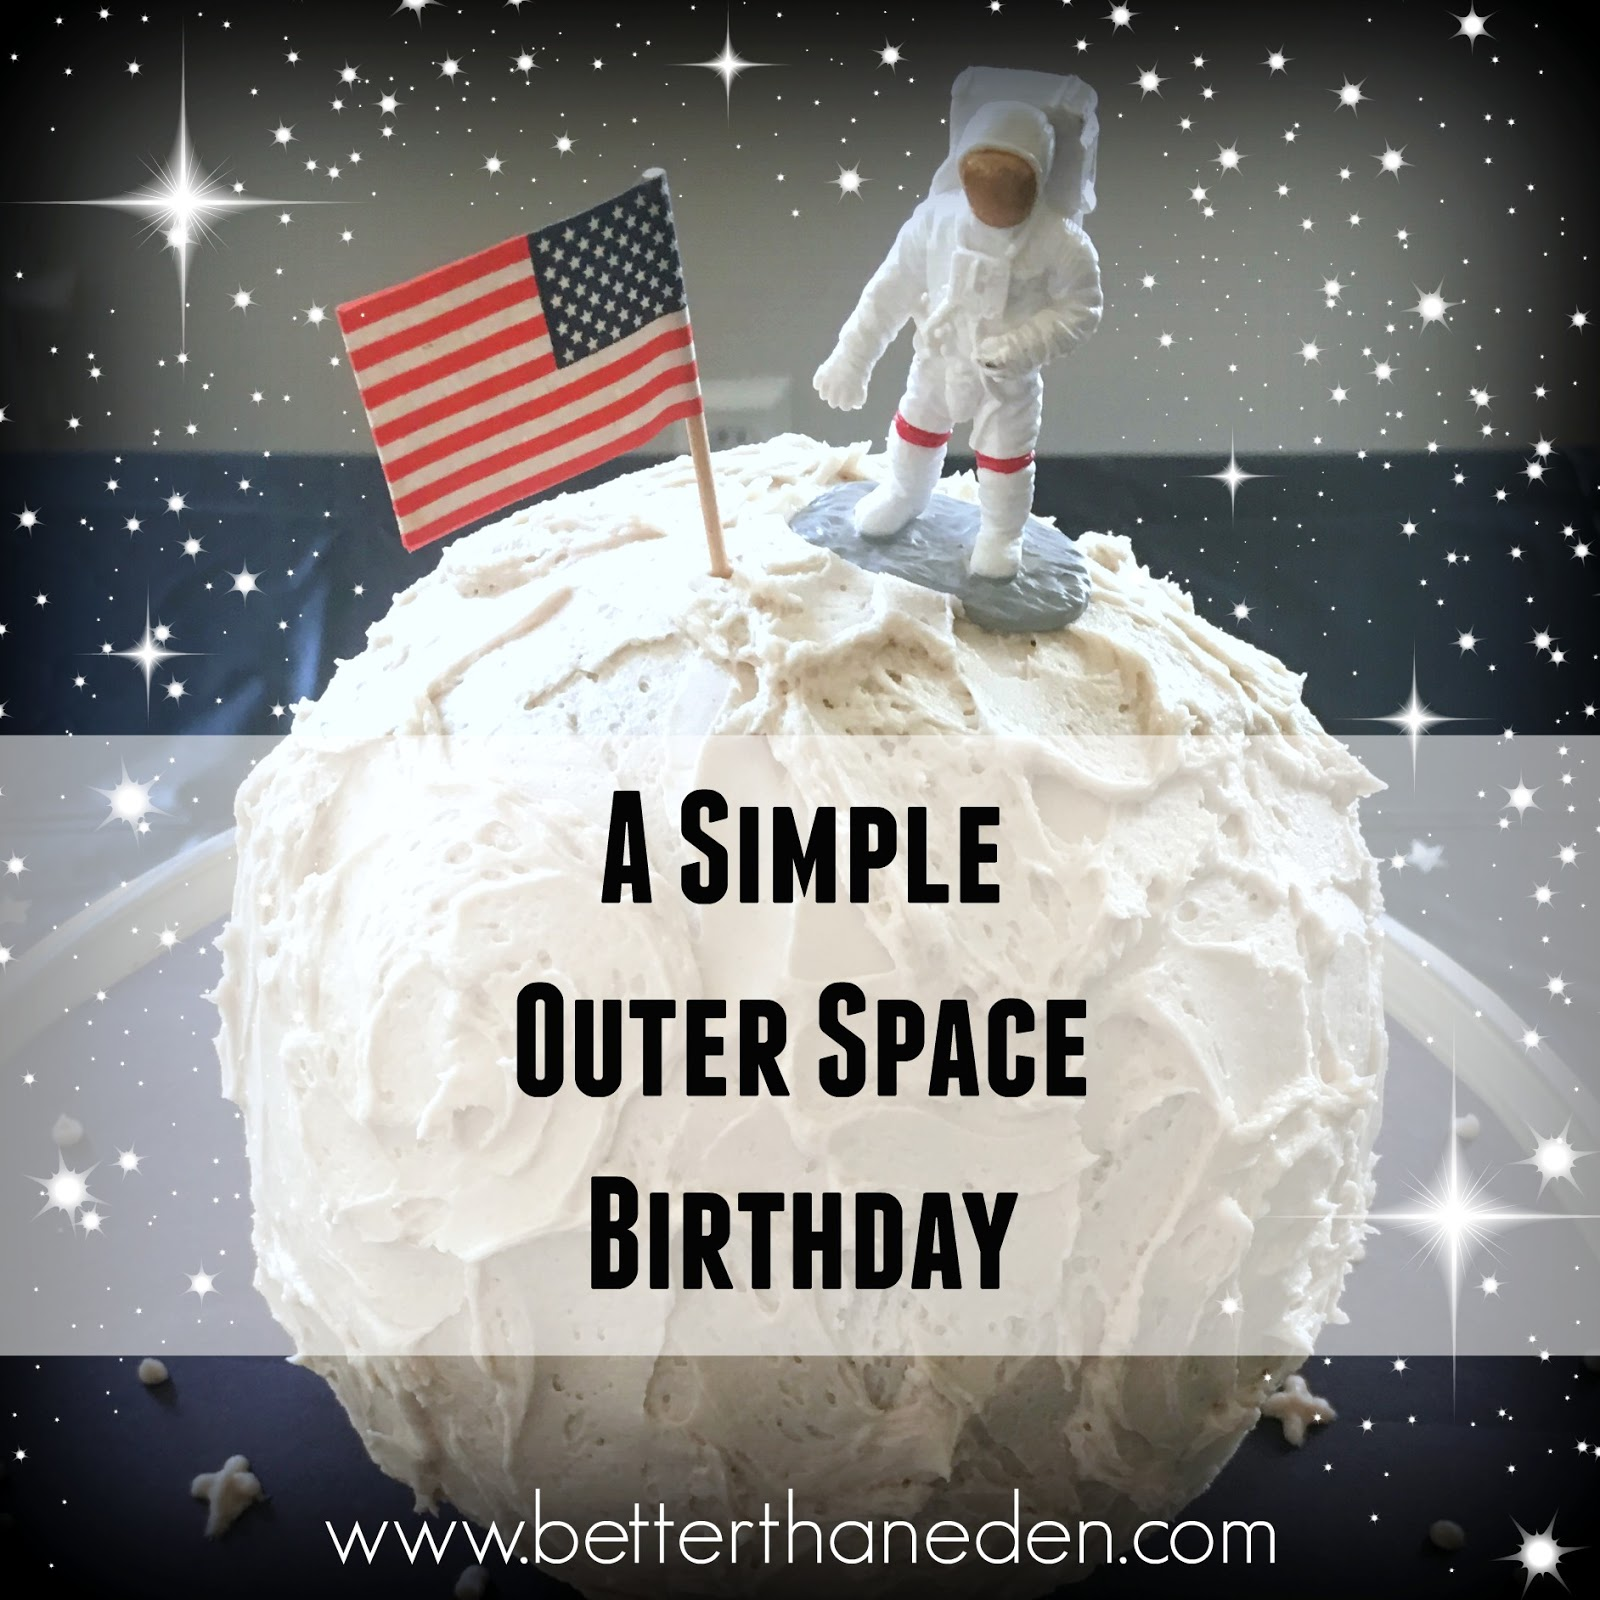 A Simple Outer Space Birthday Mary Haseltine